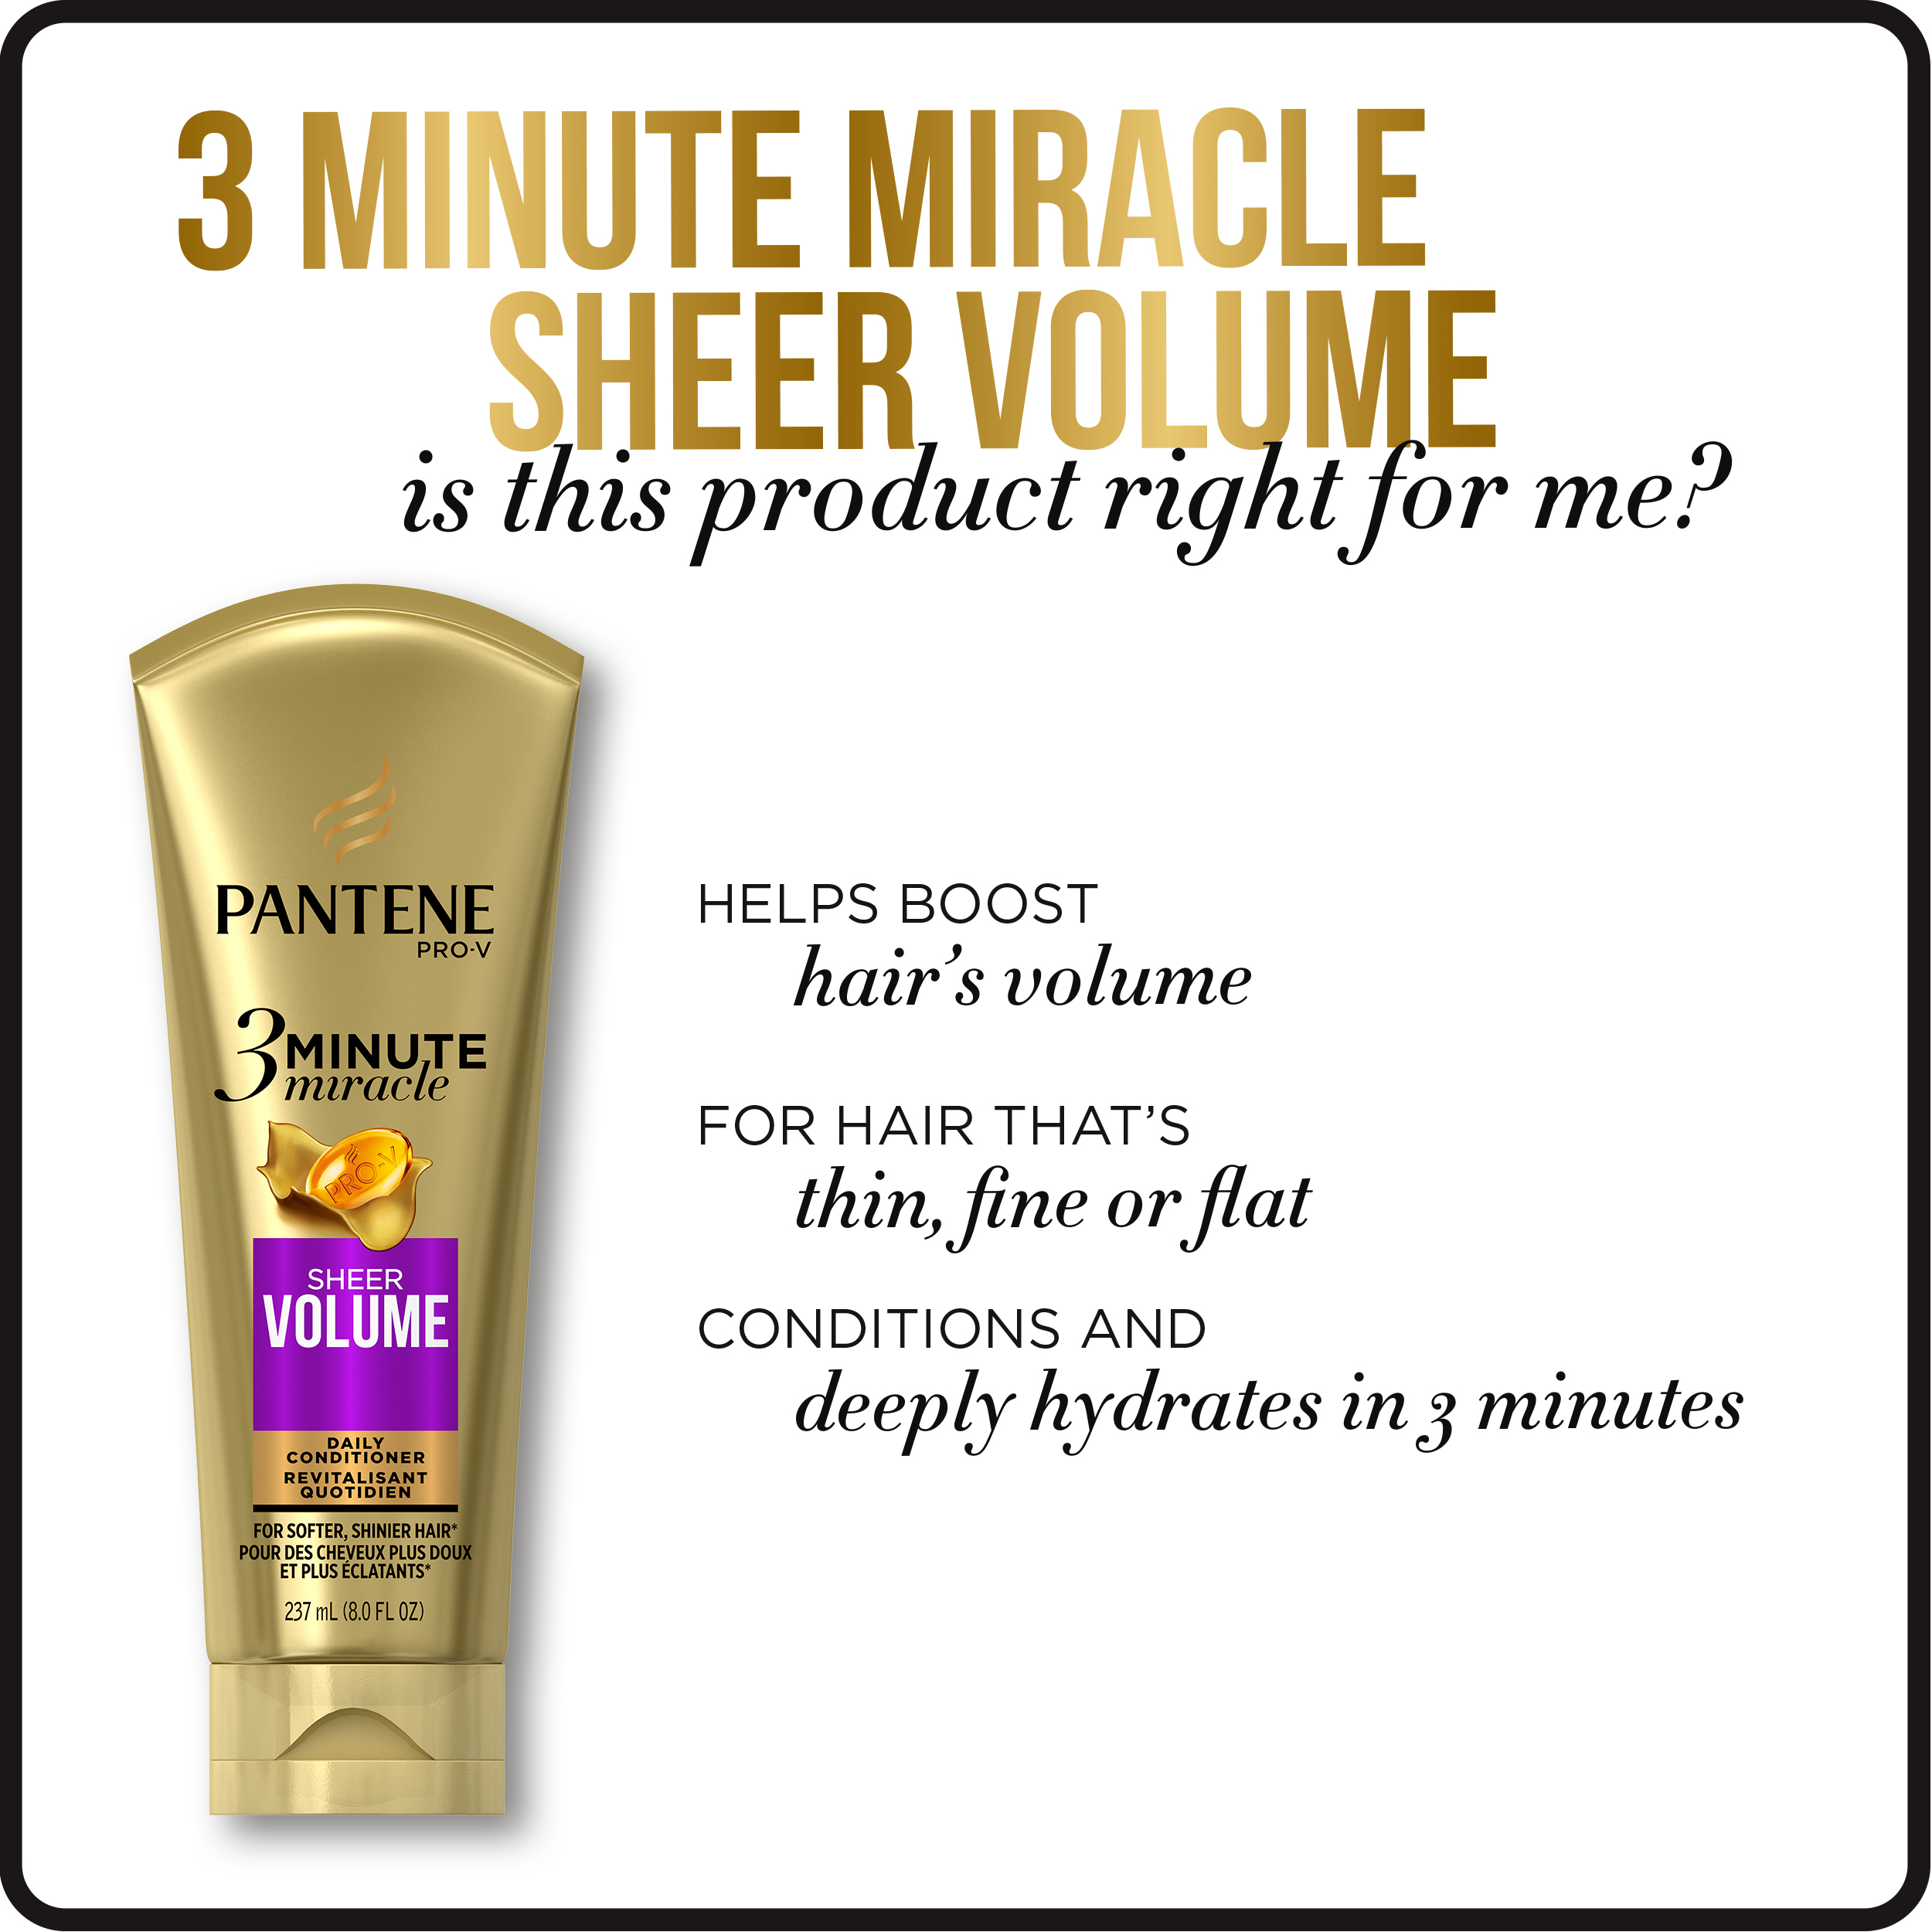 Pantene Sheer Volume 3 Minute Miracle Daily Conditioner, 8.0 fl oz ...